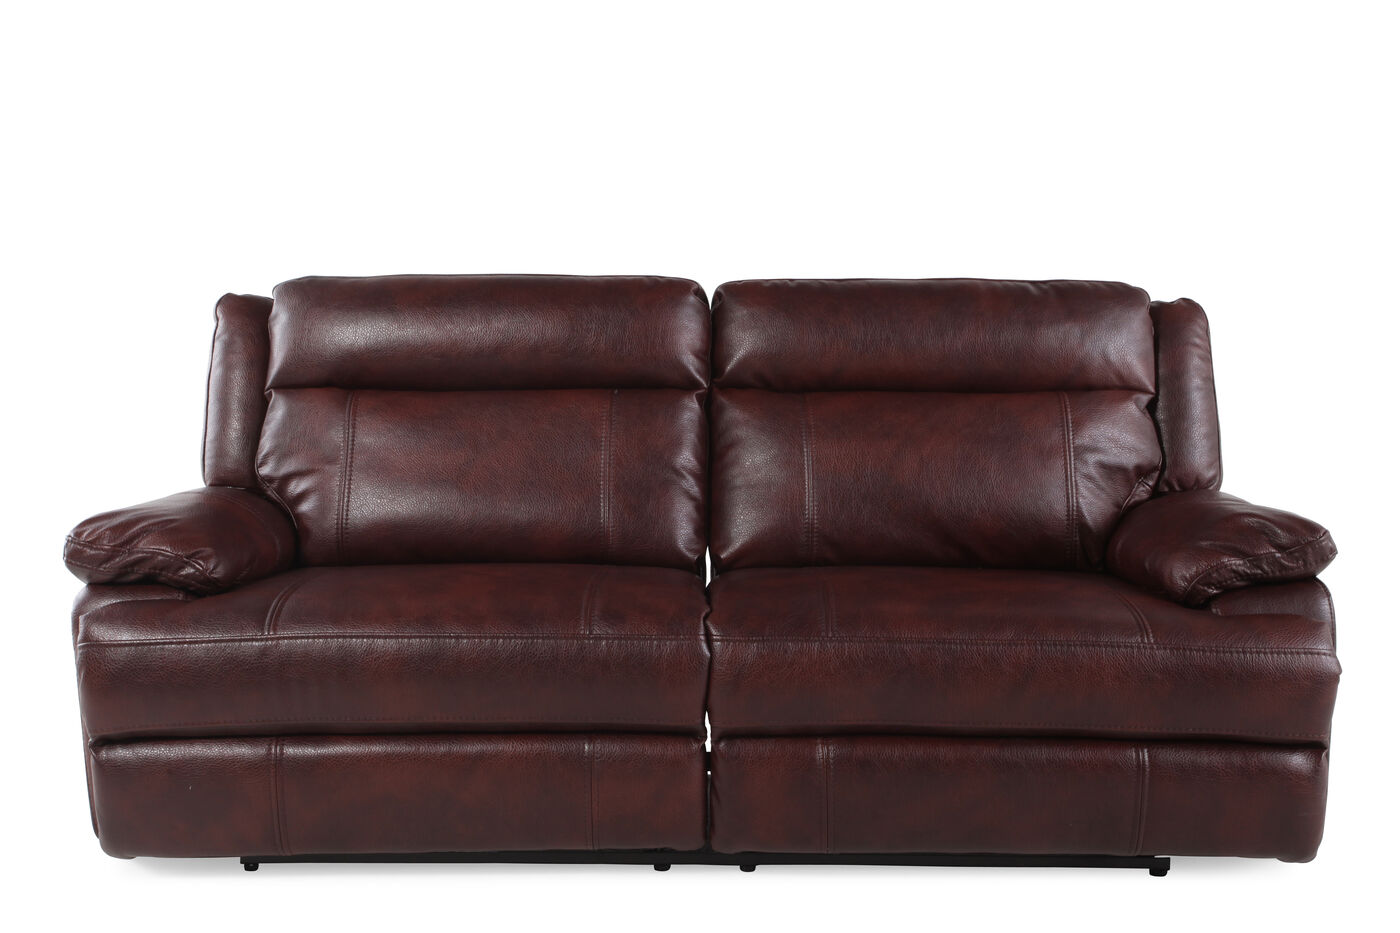 jsp loveseat contemporary room furniture loveseats willey view store charcoal leather nigel rcwilley rc living